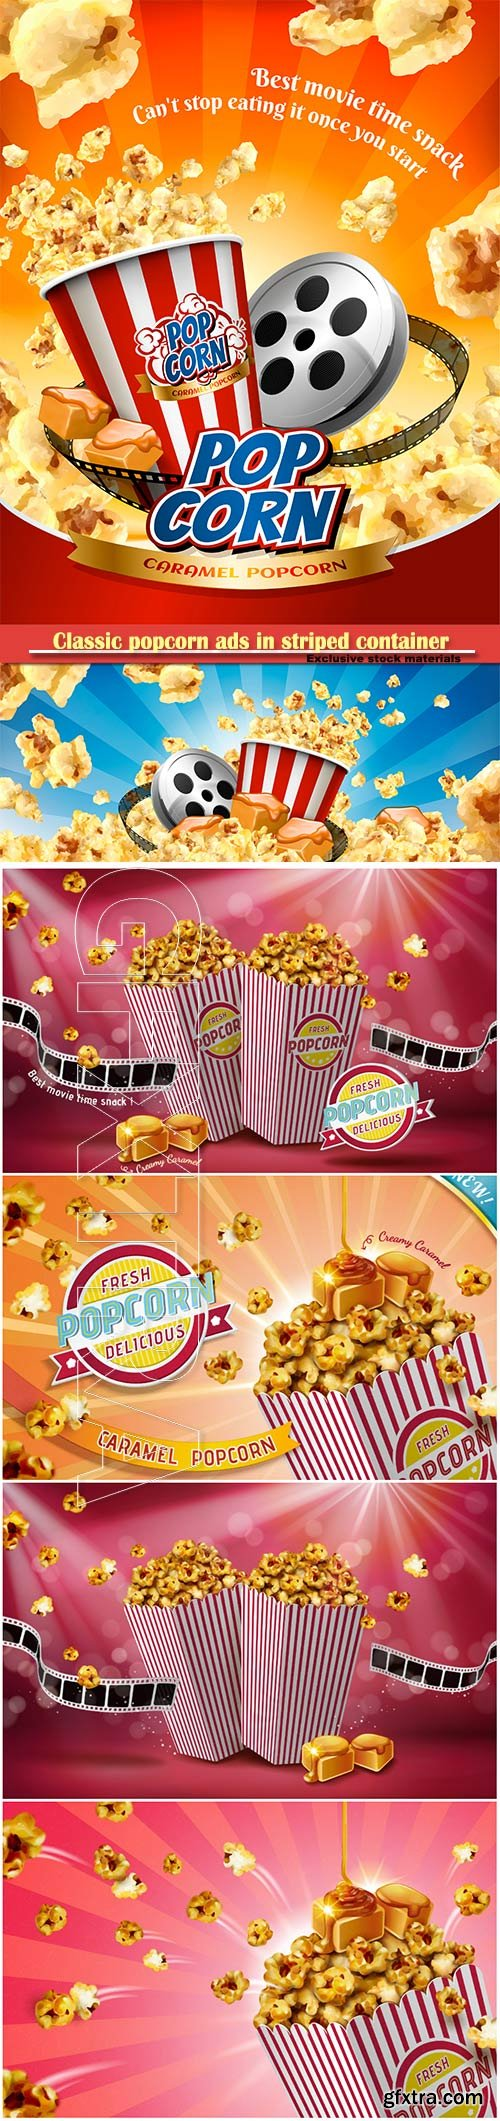 Classic popcorn ads in striped paper container, 3d vector illustration